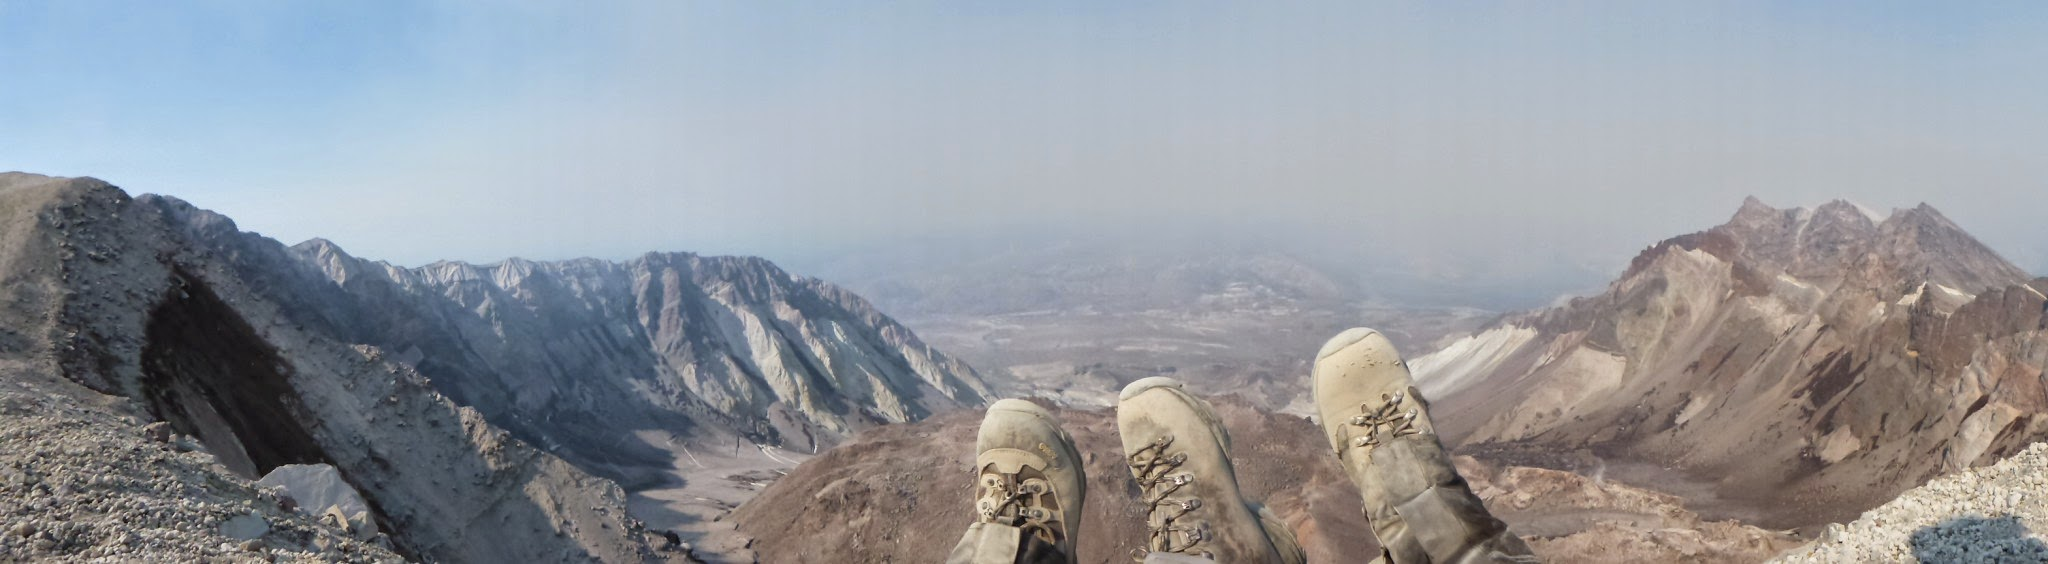 Three feet in hiking boots against a backdrop of a volcano crater, with wildfire smoke in the distance